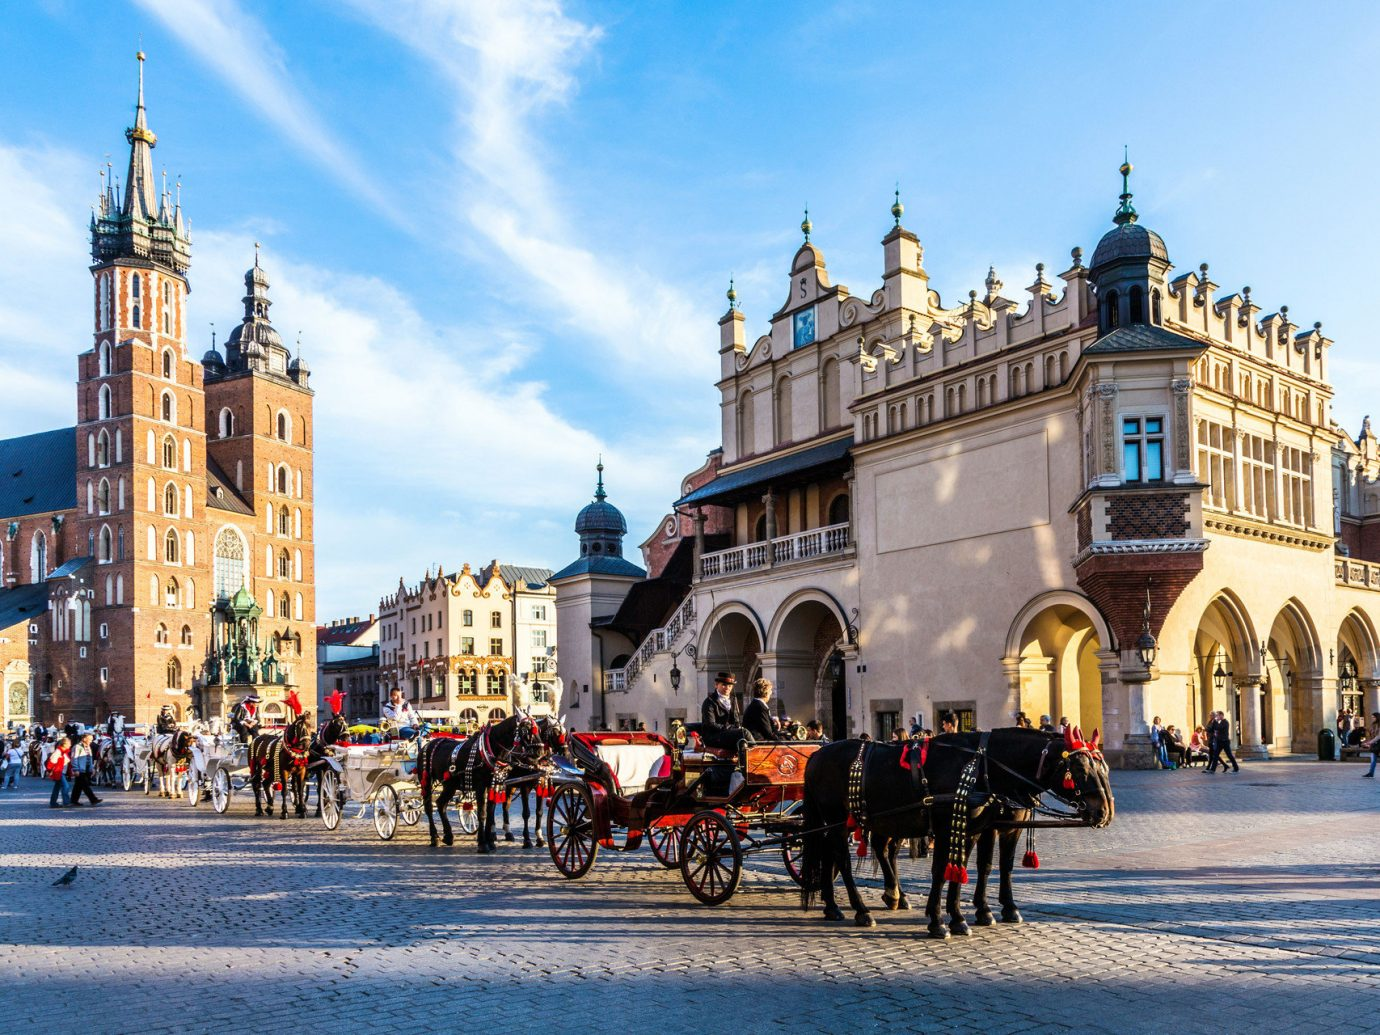 Trip Ideas outdoor building road sky street bicycle landmark Town City town square plaza Winter human settlement tourism cityscape season Downtown evening vehicle people palace drawn carriage square stone